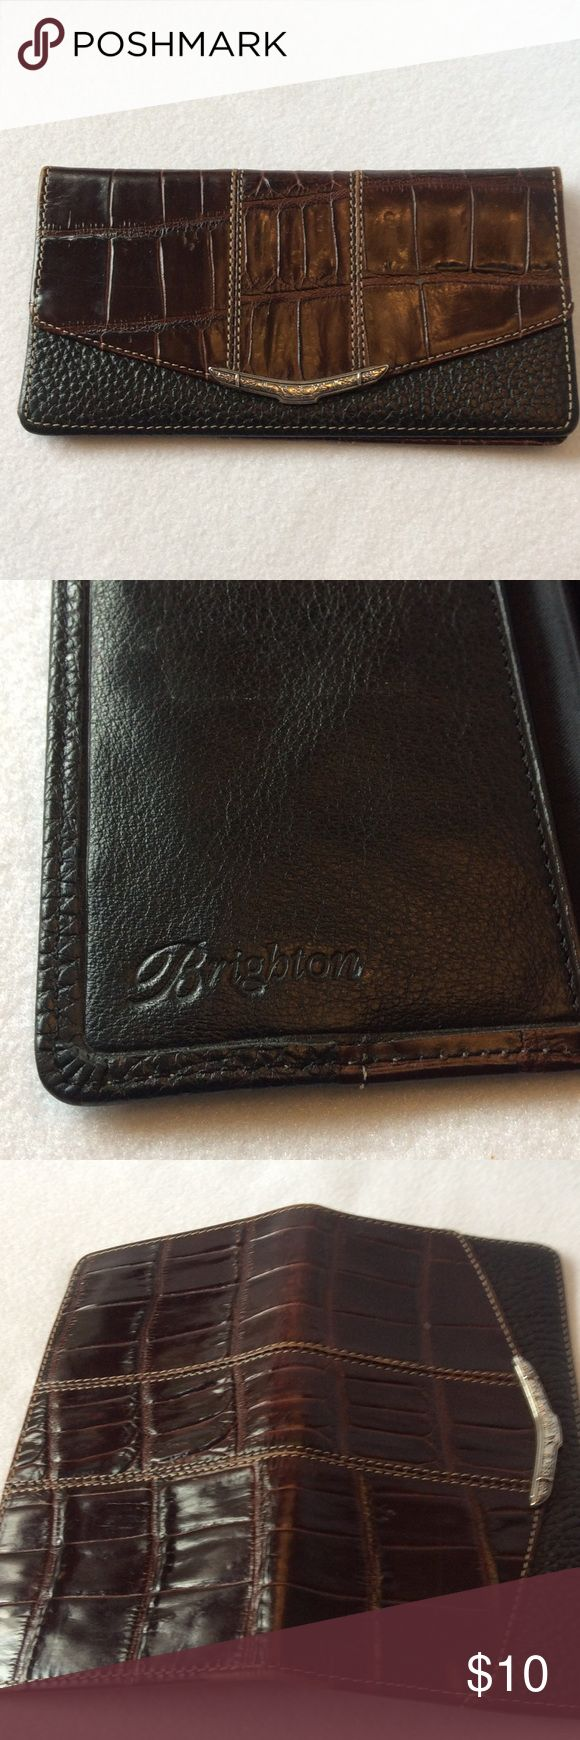 Brighton Checkbook & Credit Card Holder Attractive Brighton credit card and checkbook holder.  This has 4 slots and a pocket on one side and the checkbook holder with clear duplicate check divider on the other.  Rich croc and pebble grain pattern on the outside with a gorgeous stamped silver decoration!  Enjoy! Brighton Accessories Key & Card Holders